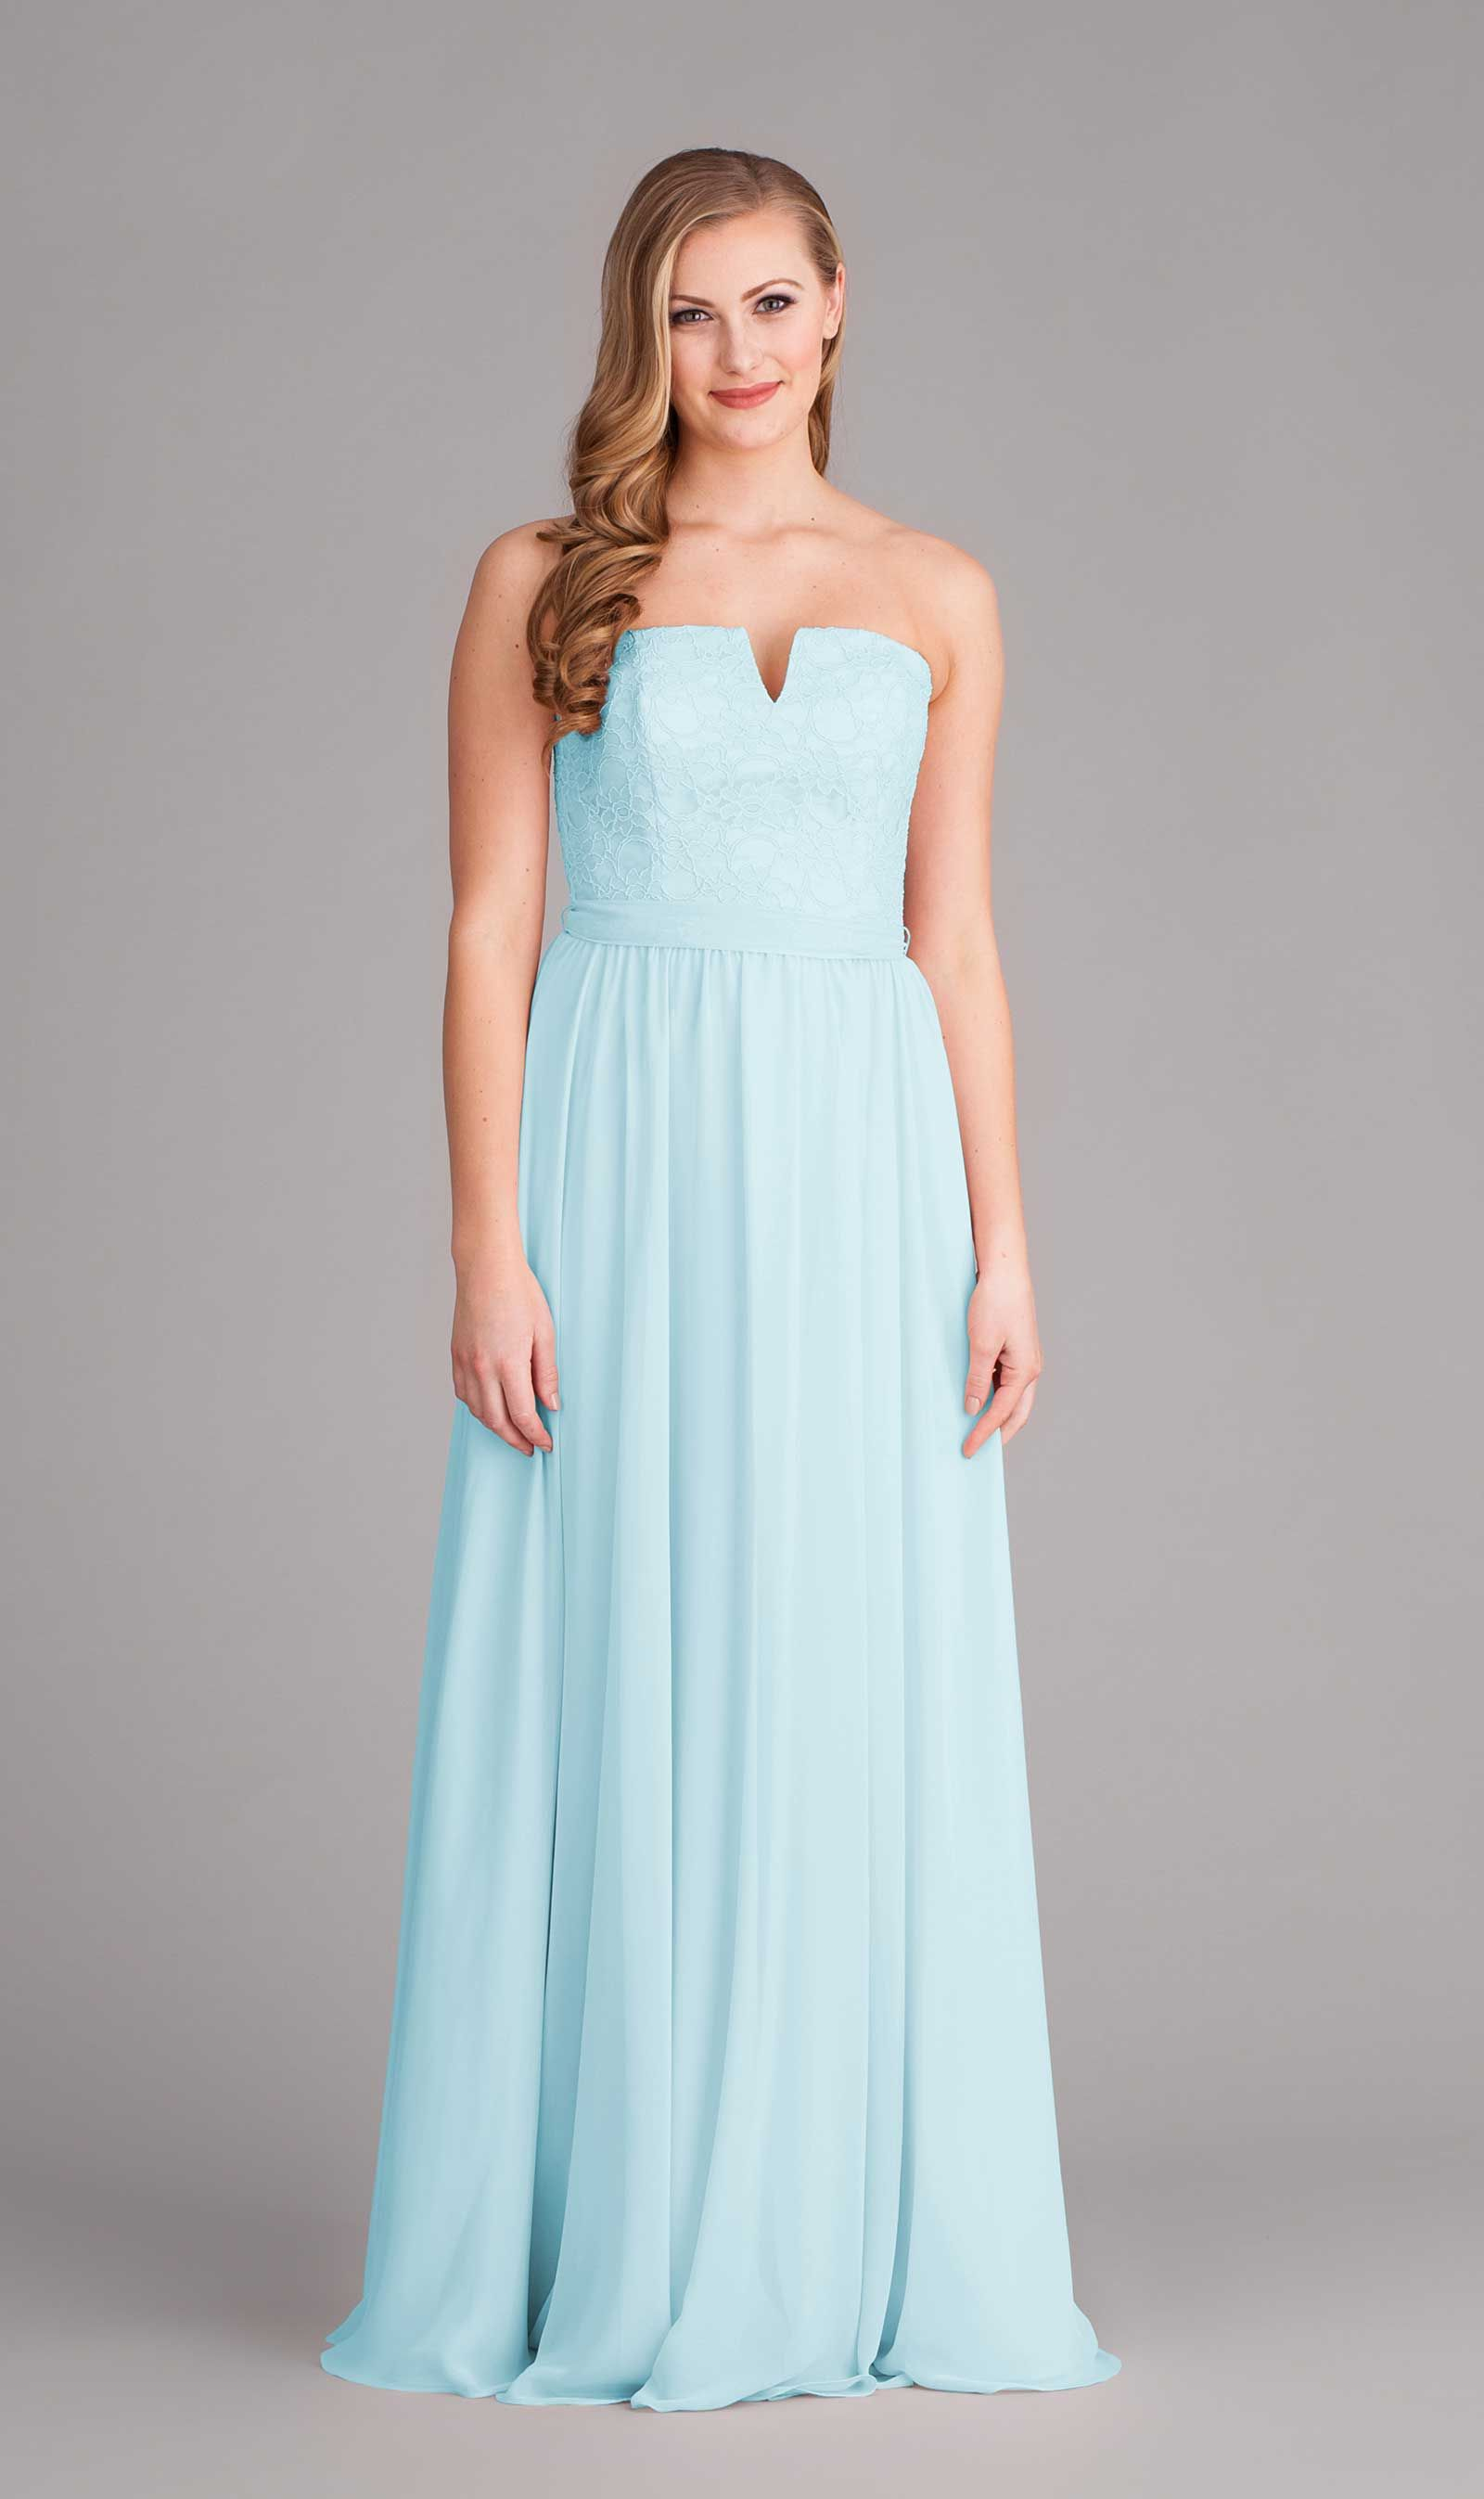 This strapless mint blue bridesmaid dress is a serious headturner